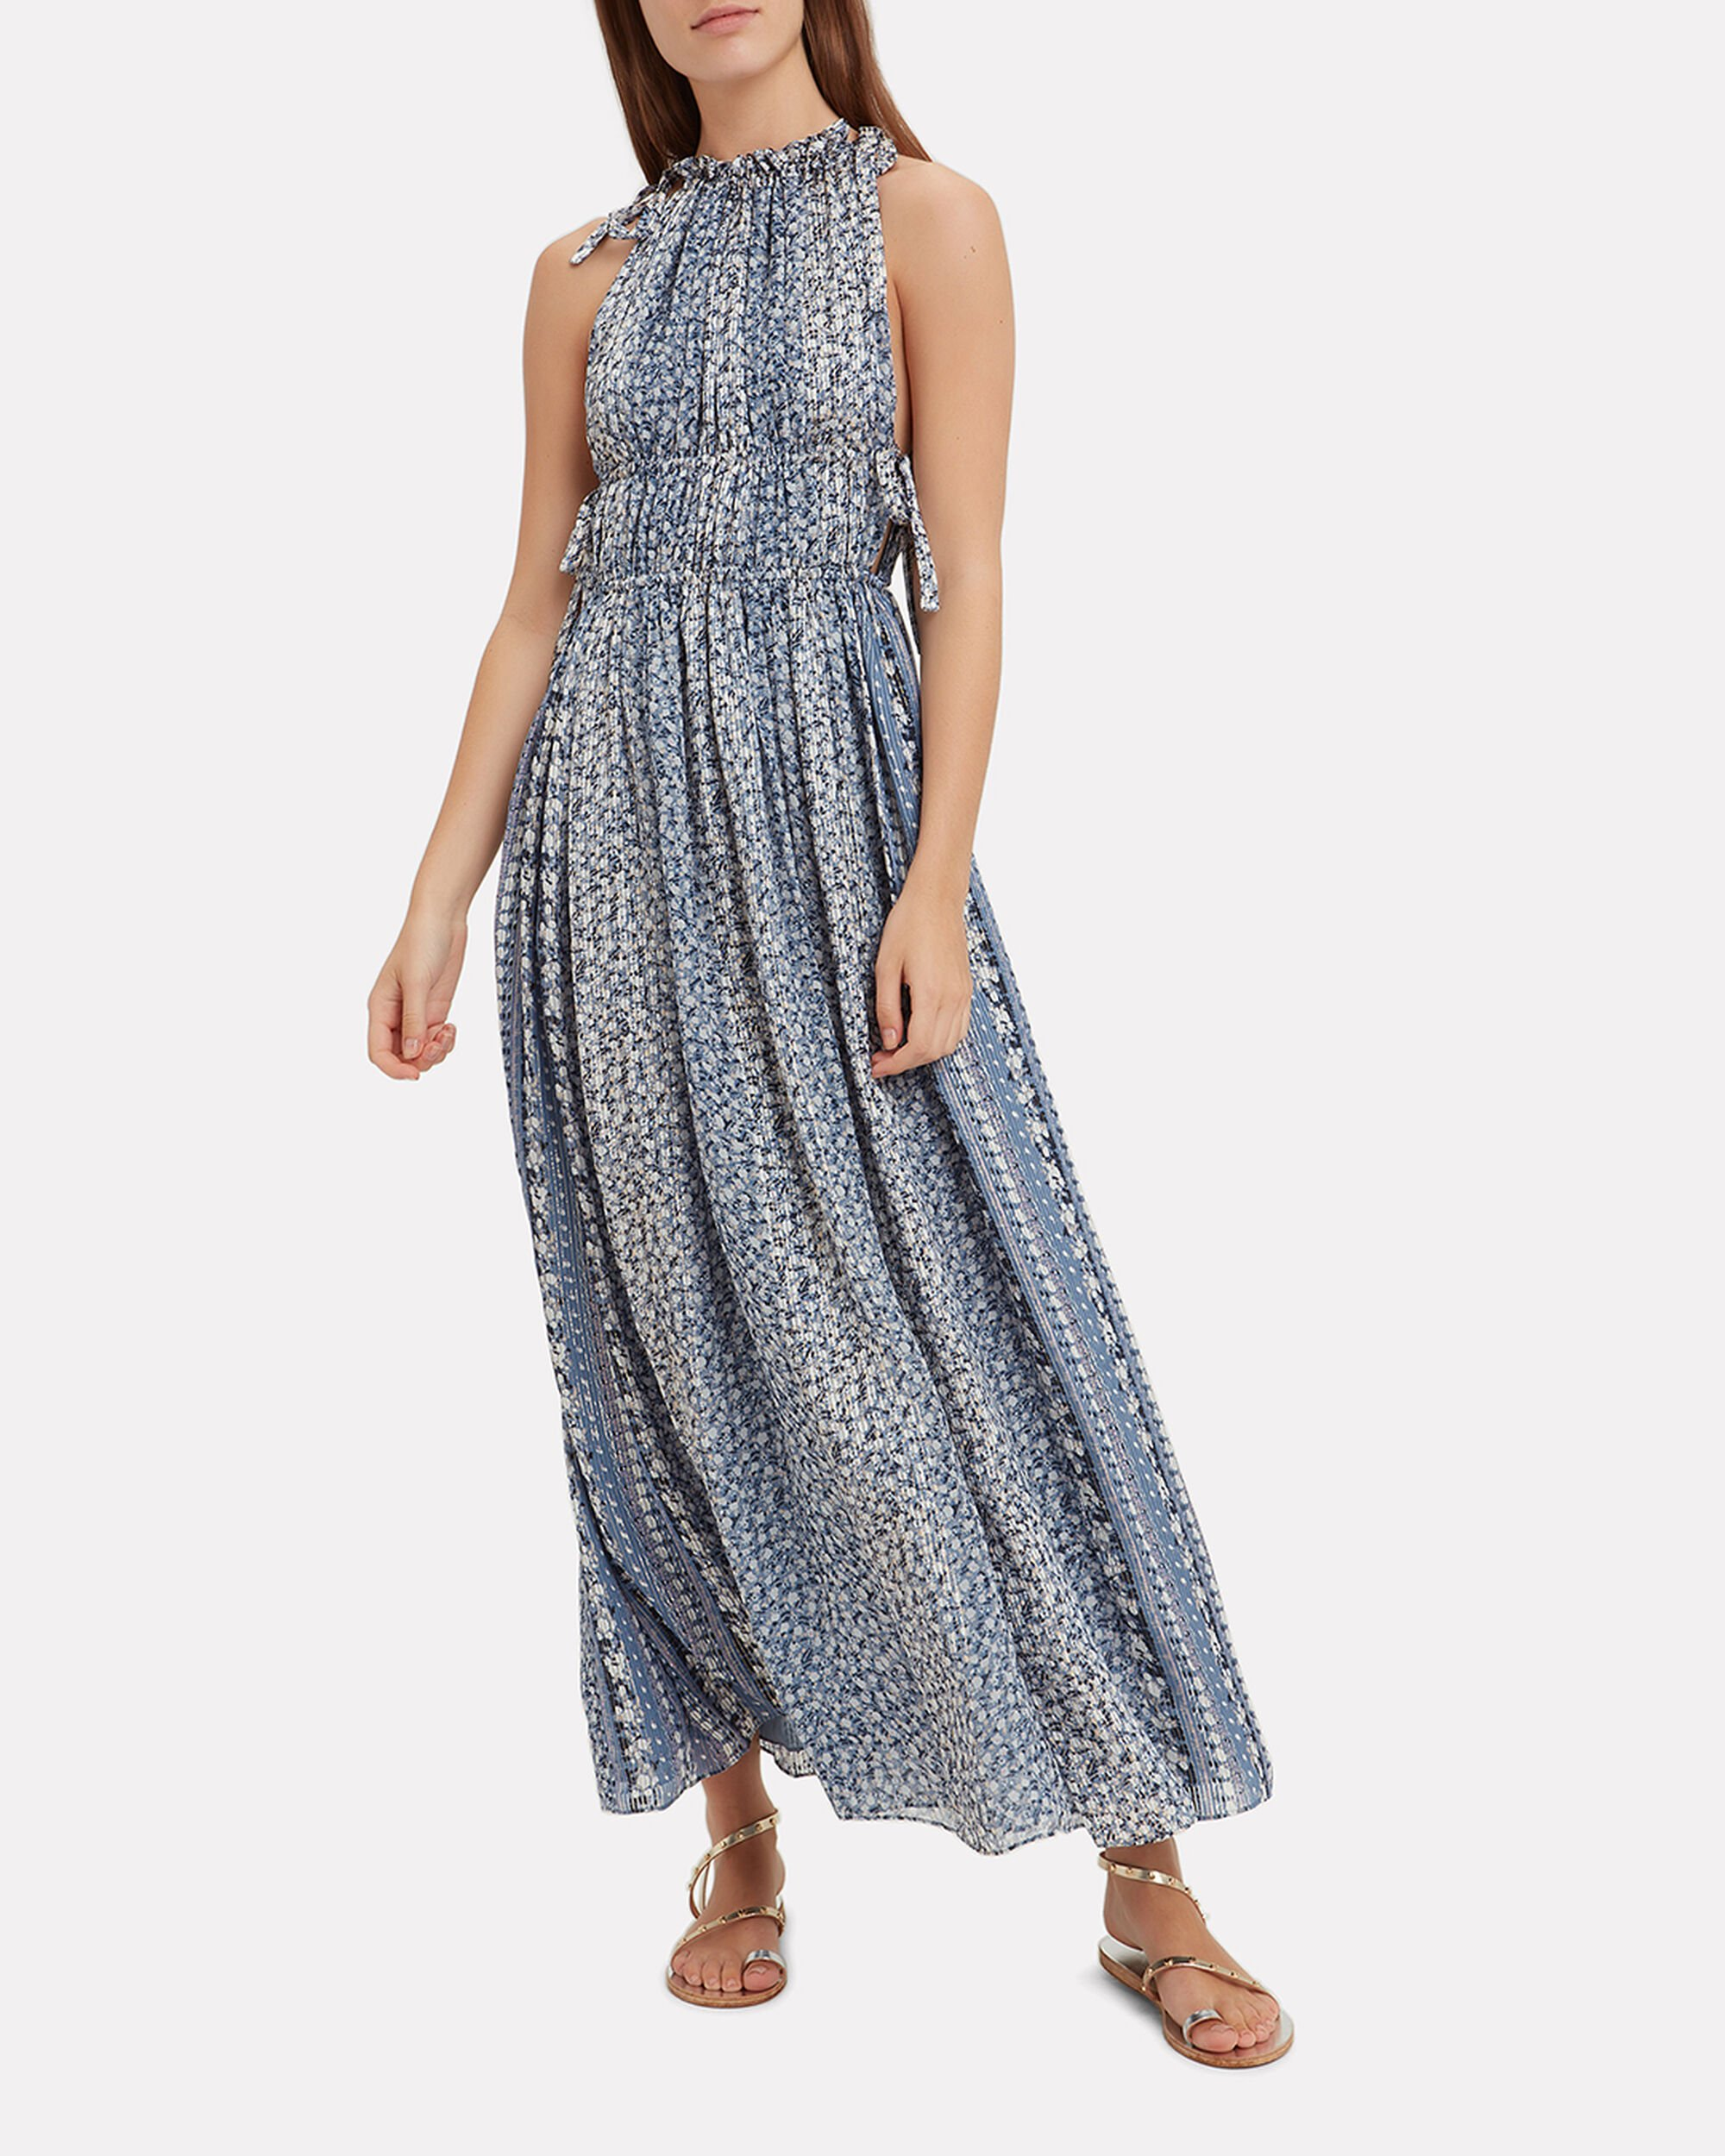 Augustine Pleated Maxi Dress, BLUE-MED, hi-res